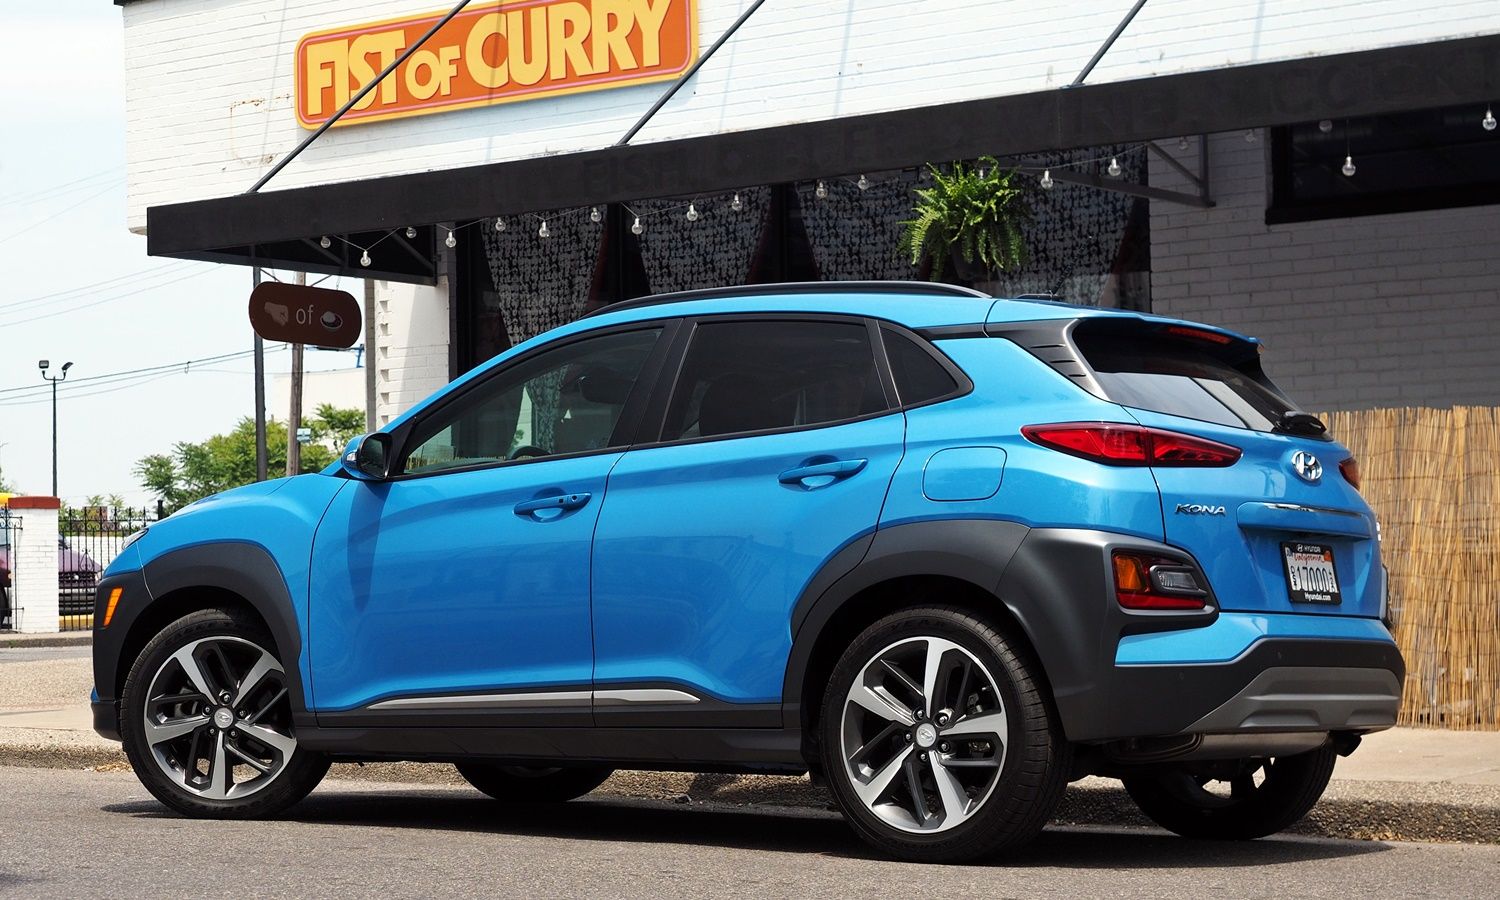 Hyundai Kona Photos: 2018 Hyundai Kona rear quarter view low